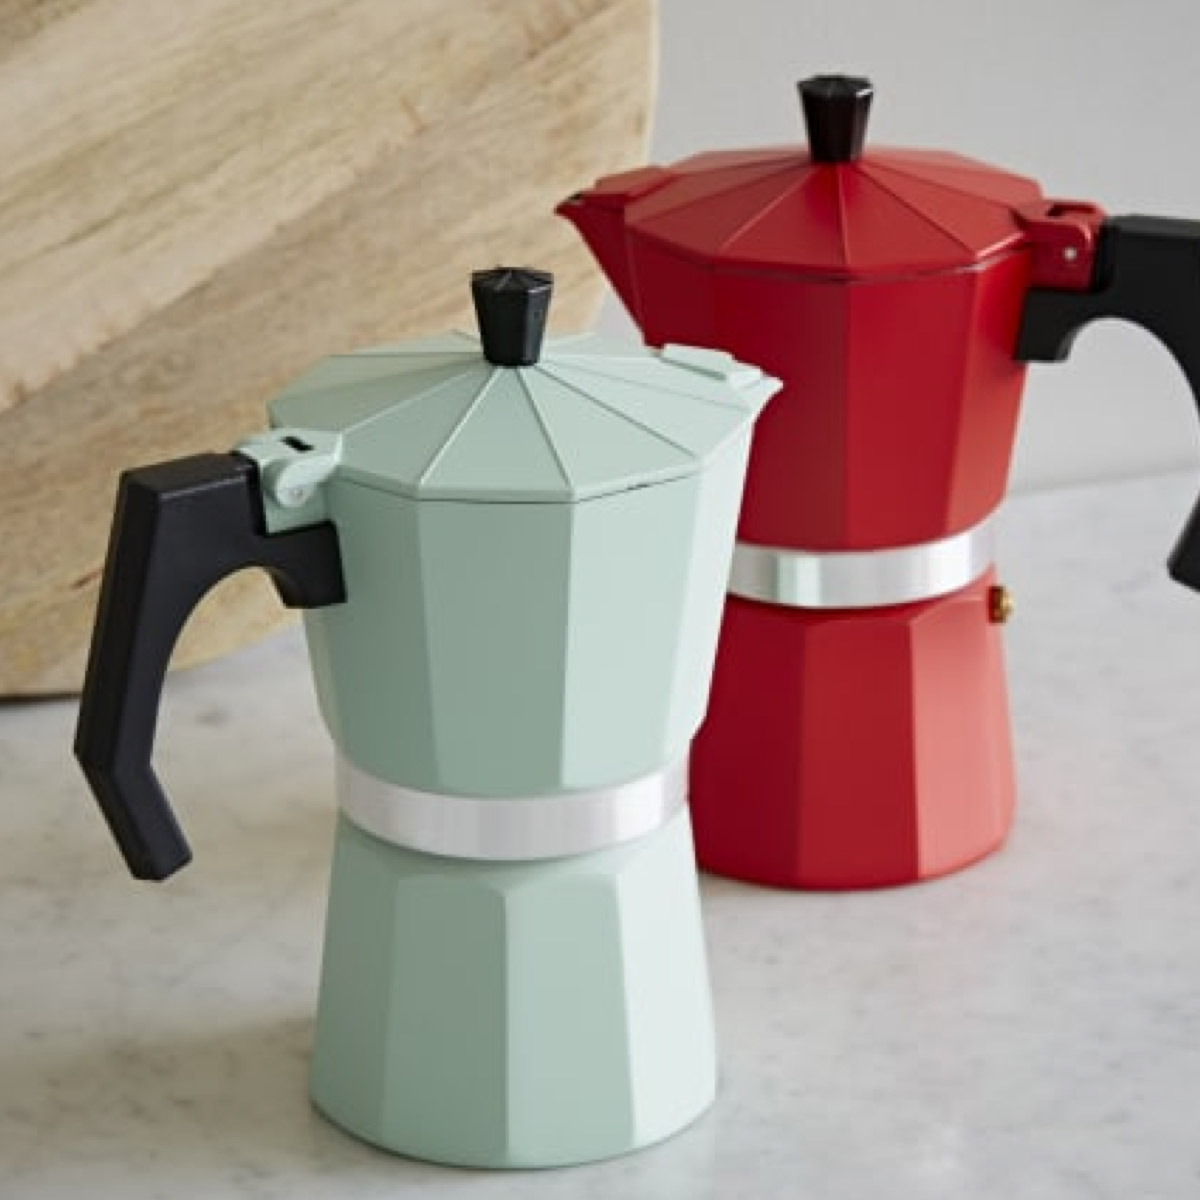 Colourful Stovetop Espresso Maker